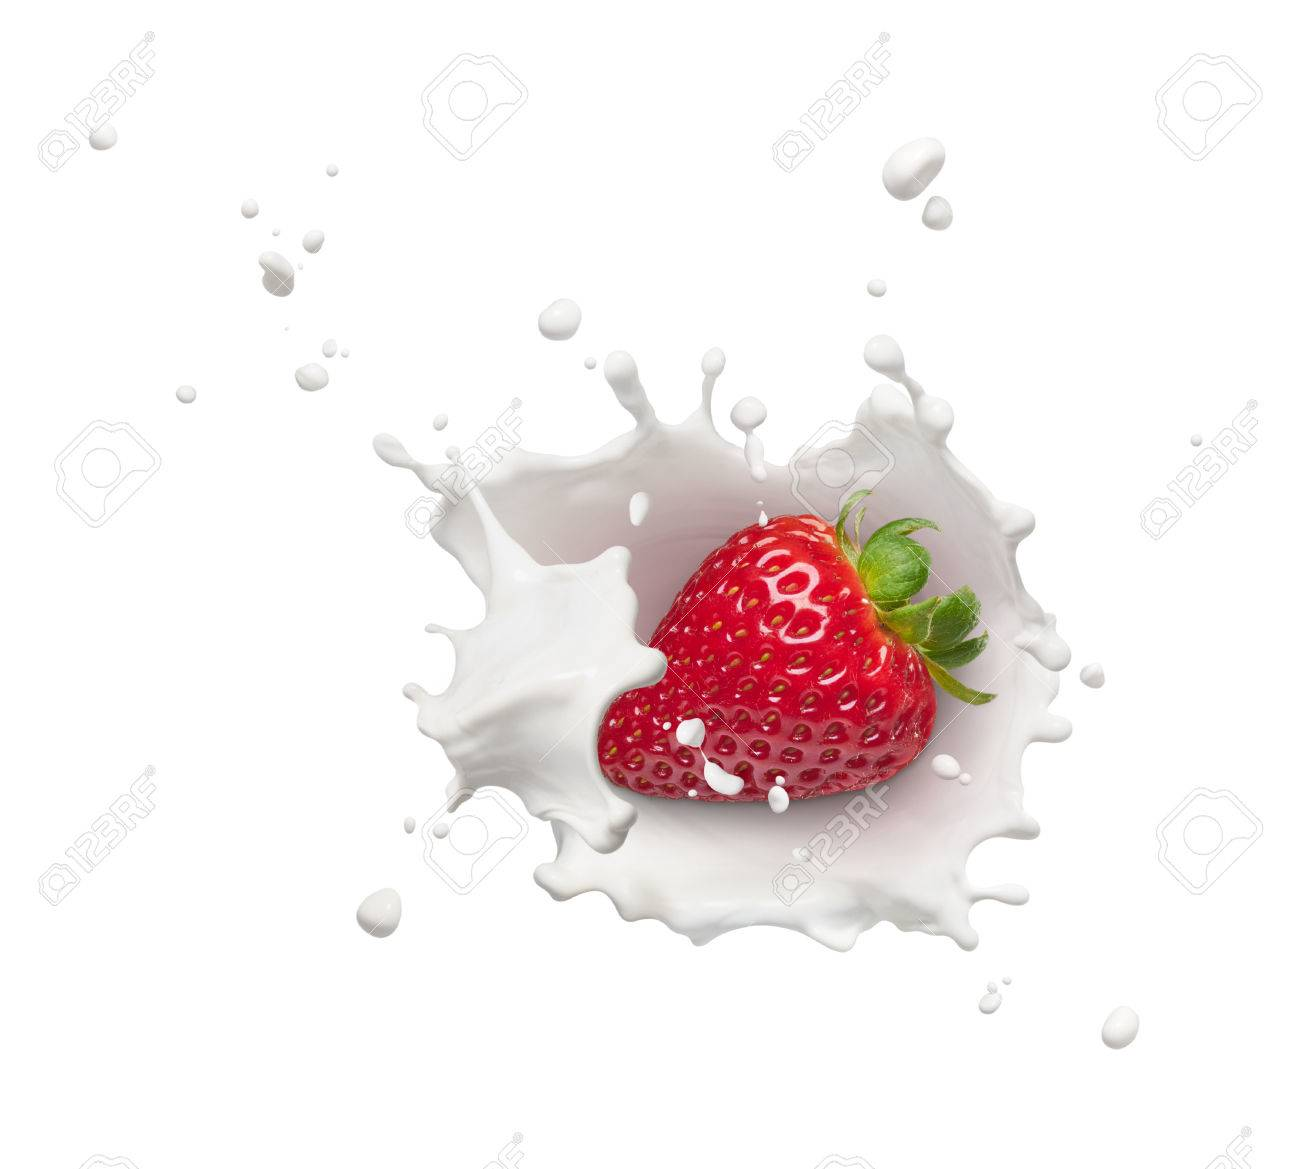 milk splash with strawberry from top view - 63375548